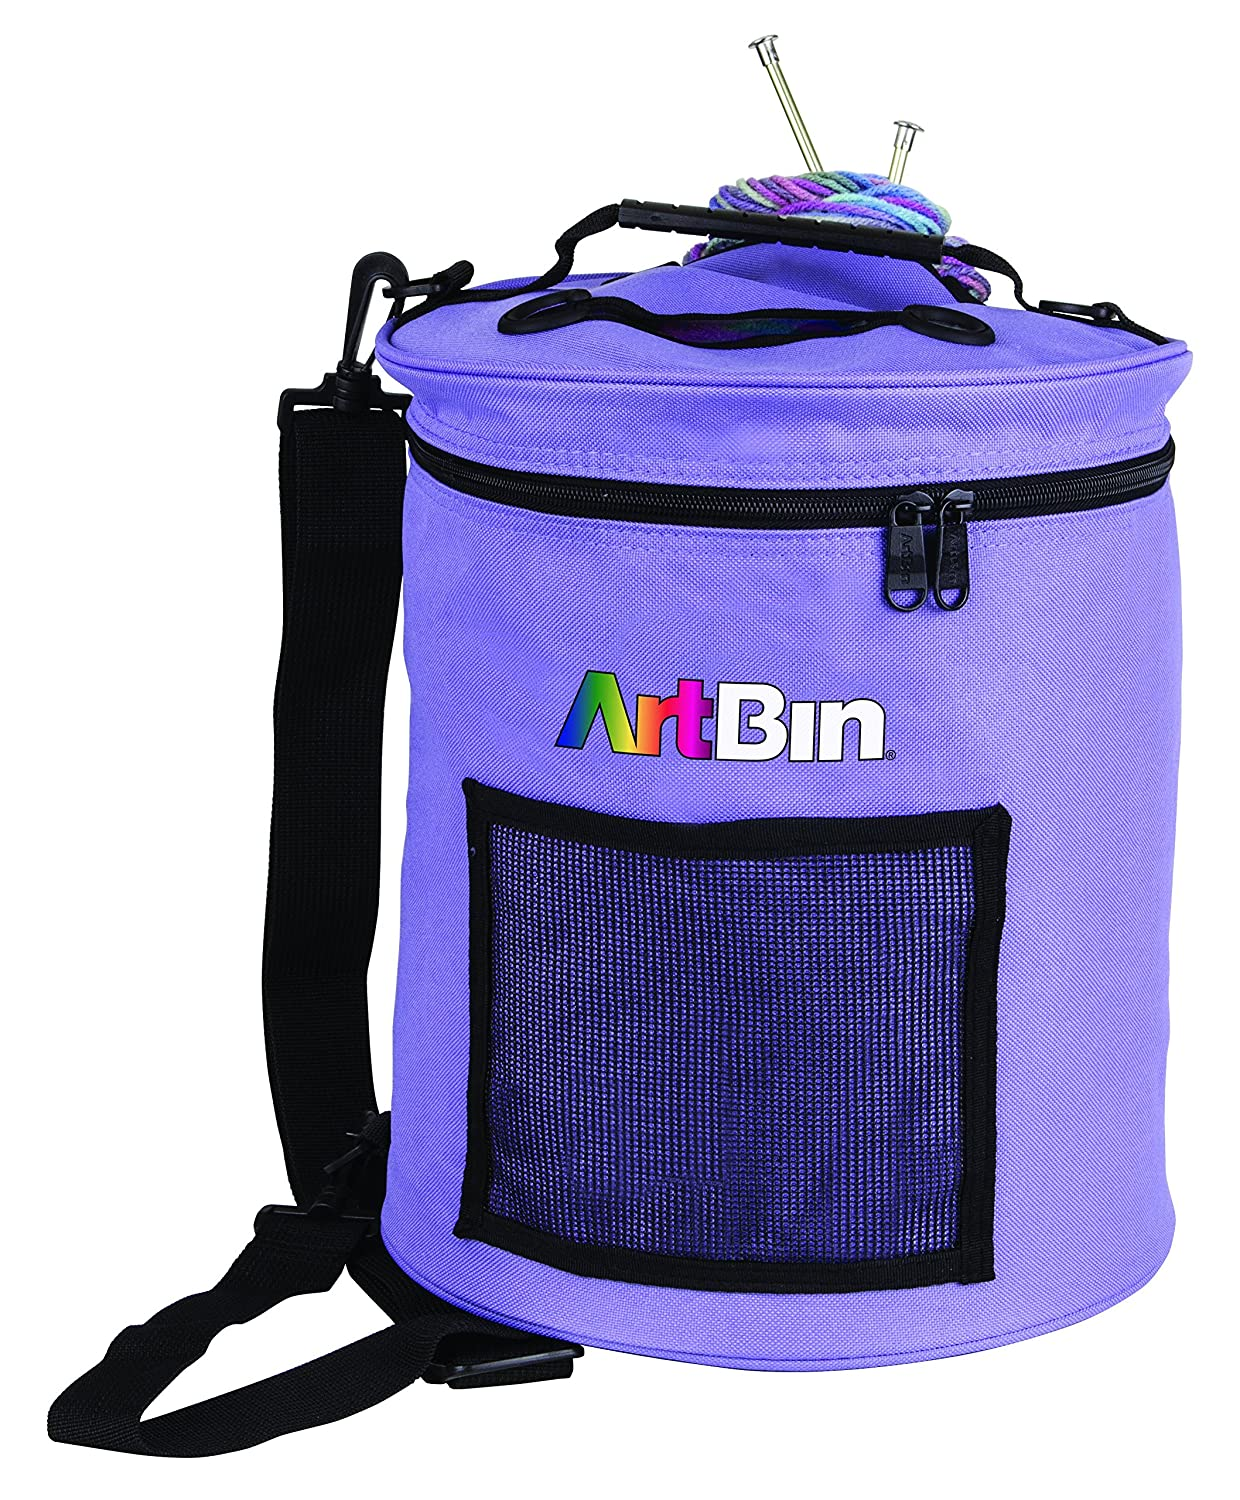 ArtBin Yarn Drum; Round Periwinkle Knitting and Crochet Tote Bag, 6807SA Flambeau